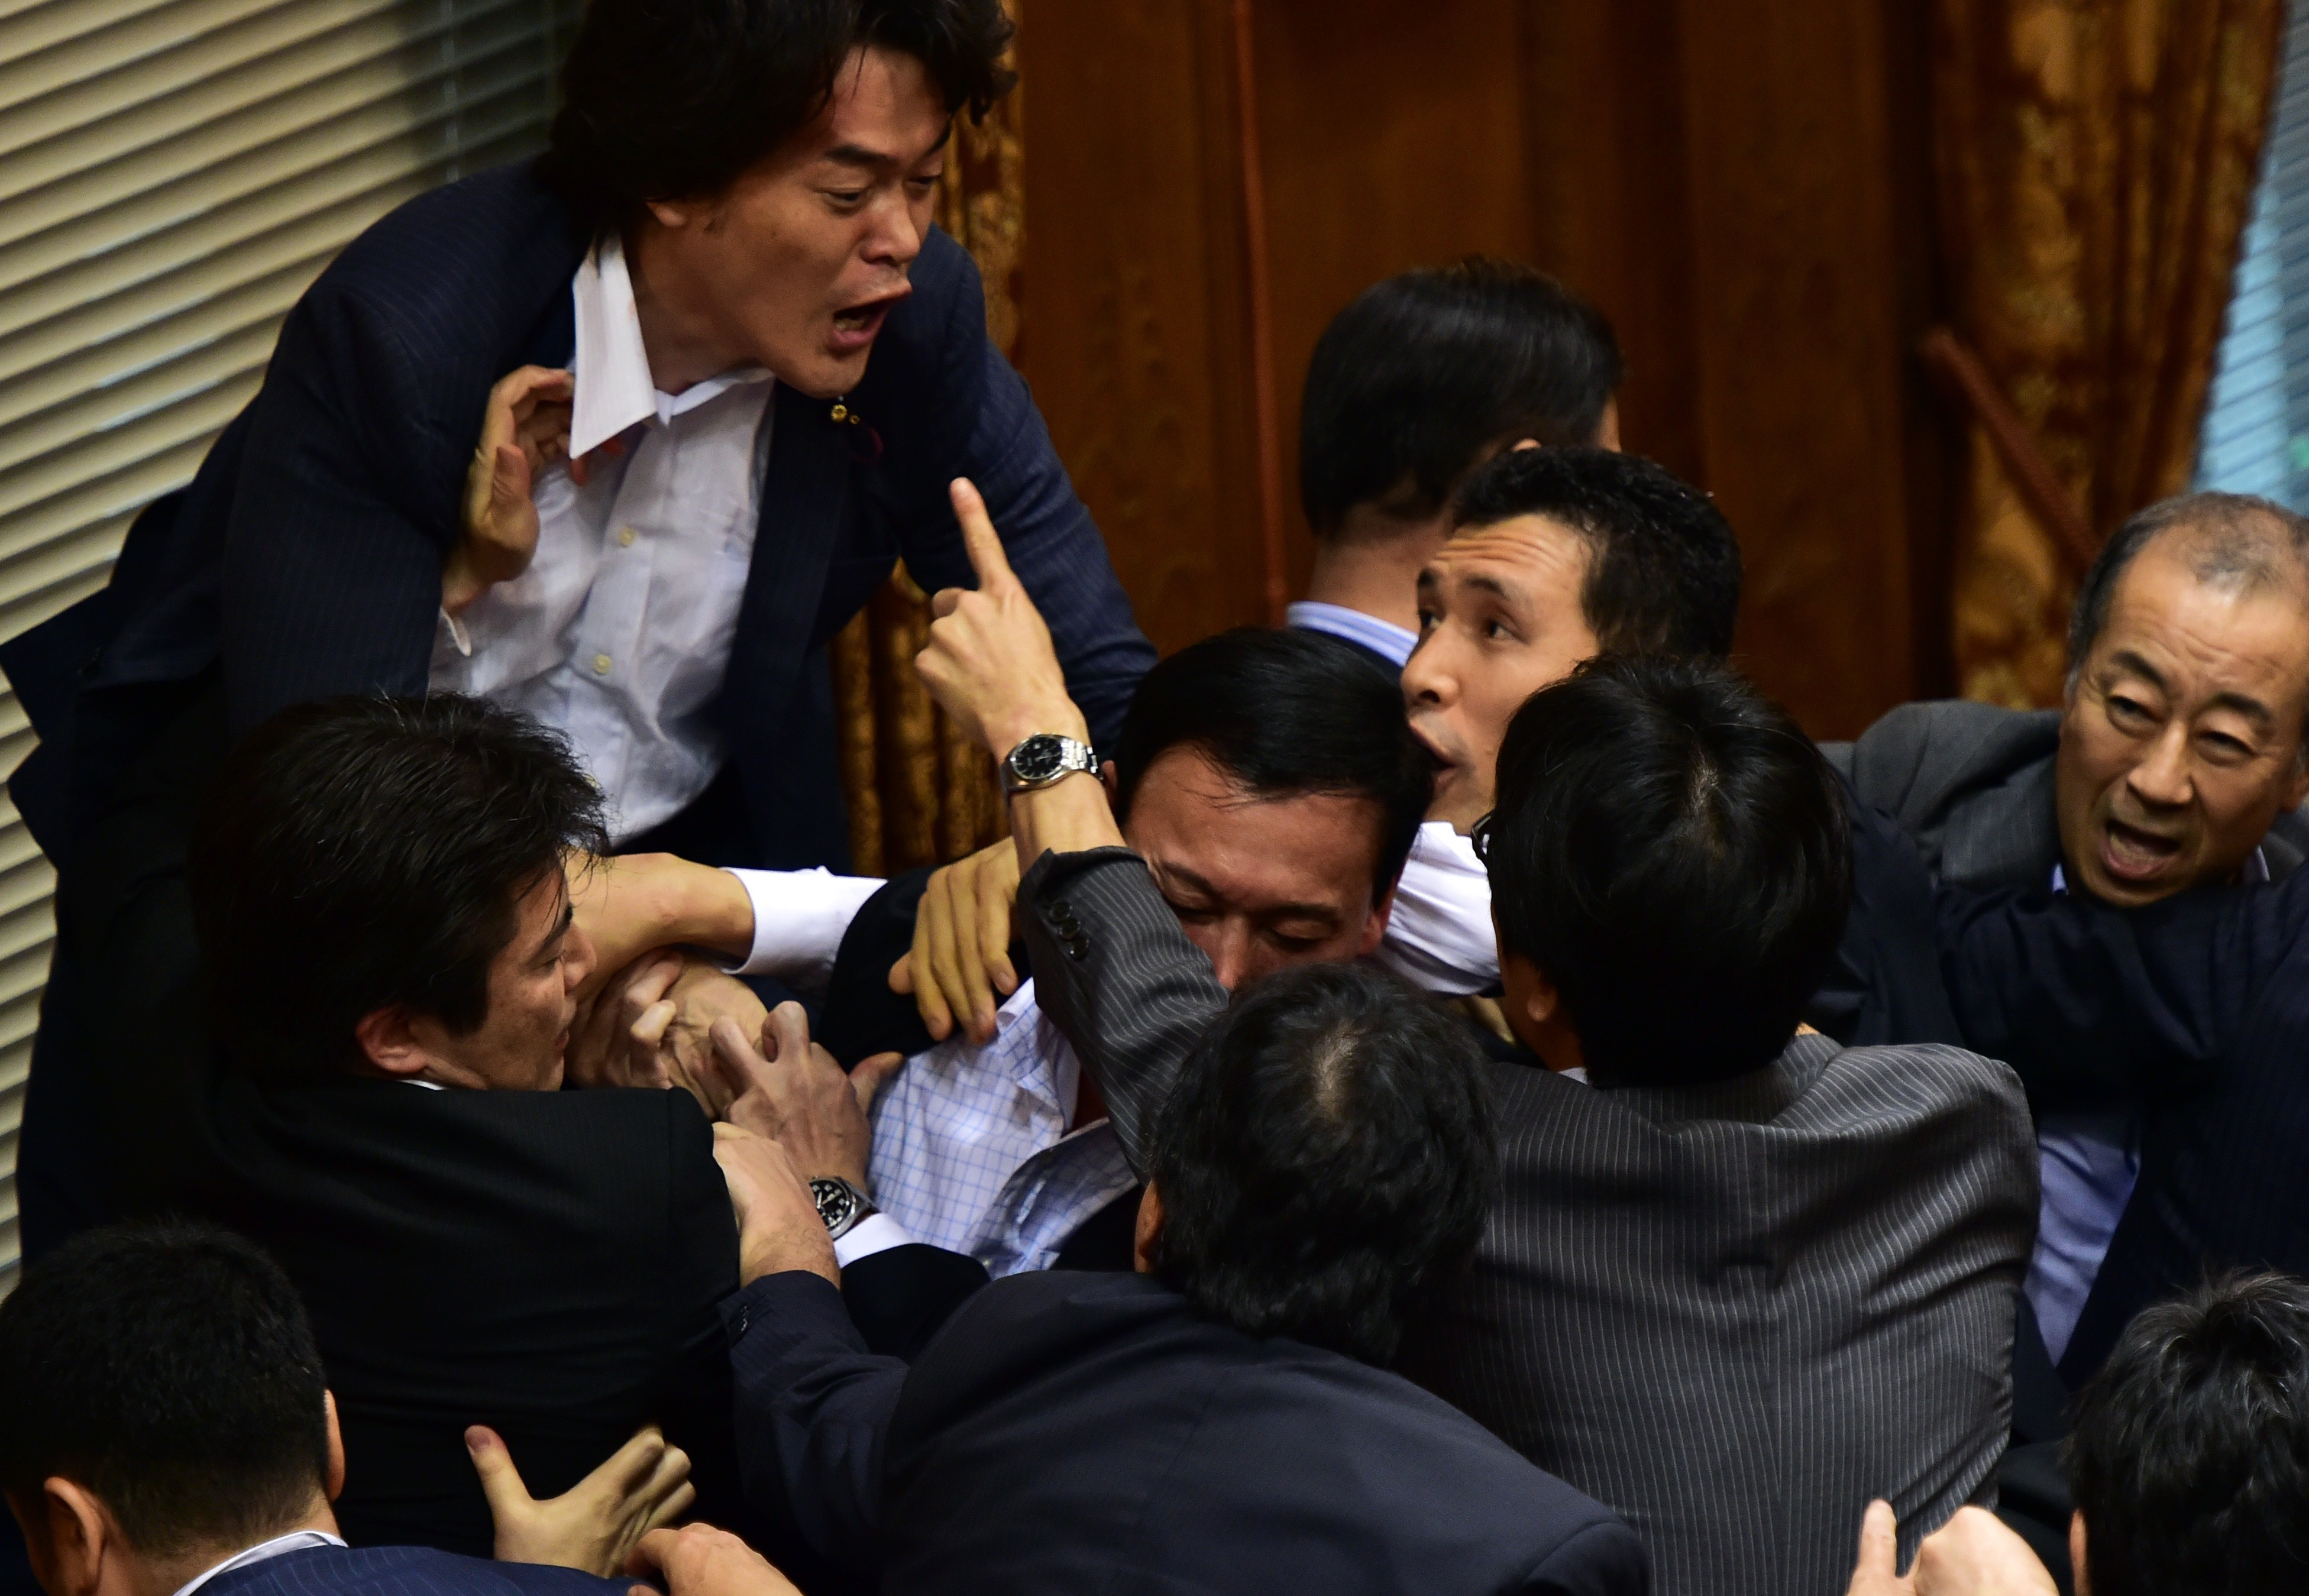 Japanese ruling and opposition lawmakers scuffle at the Upper House's ad hoc committee session for the controversial security bills at the National Diet in Tokyo on September 17, 2015. Japanese lawmakers came to blows as they tried -- and failed -- to stop the passage of a security bill that could see the military fight abroad for the first time in decades.  AFP PHOTO / Yoshikazu TSUNO